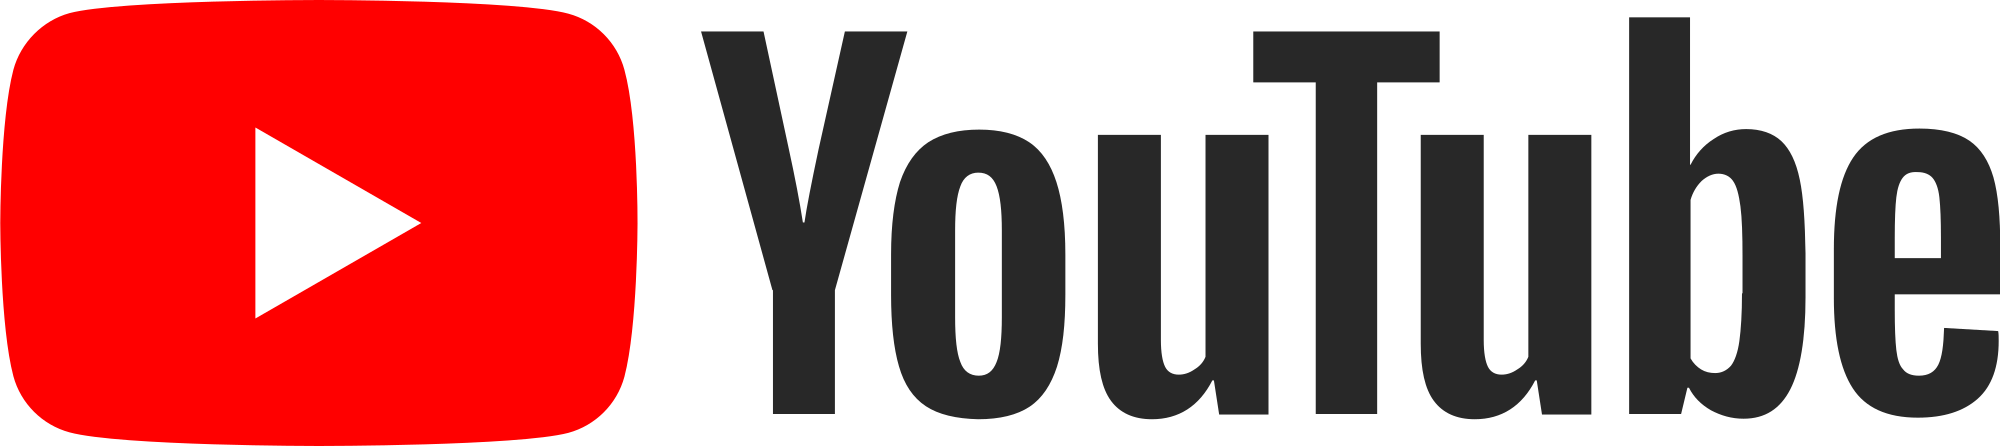 Youtube png. File logo svg wikimedia